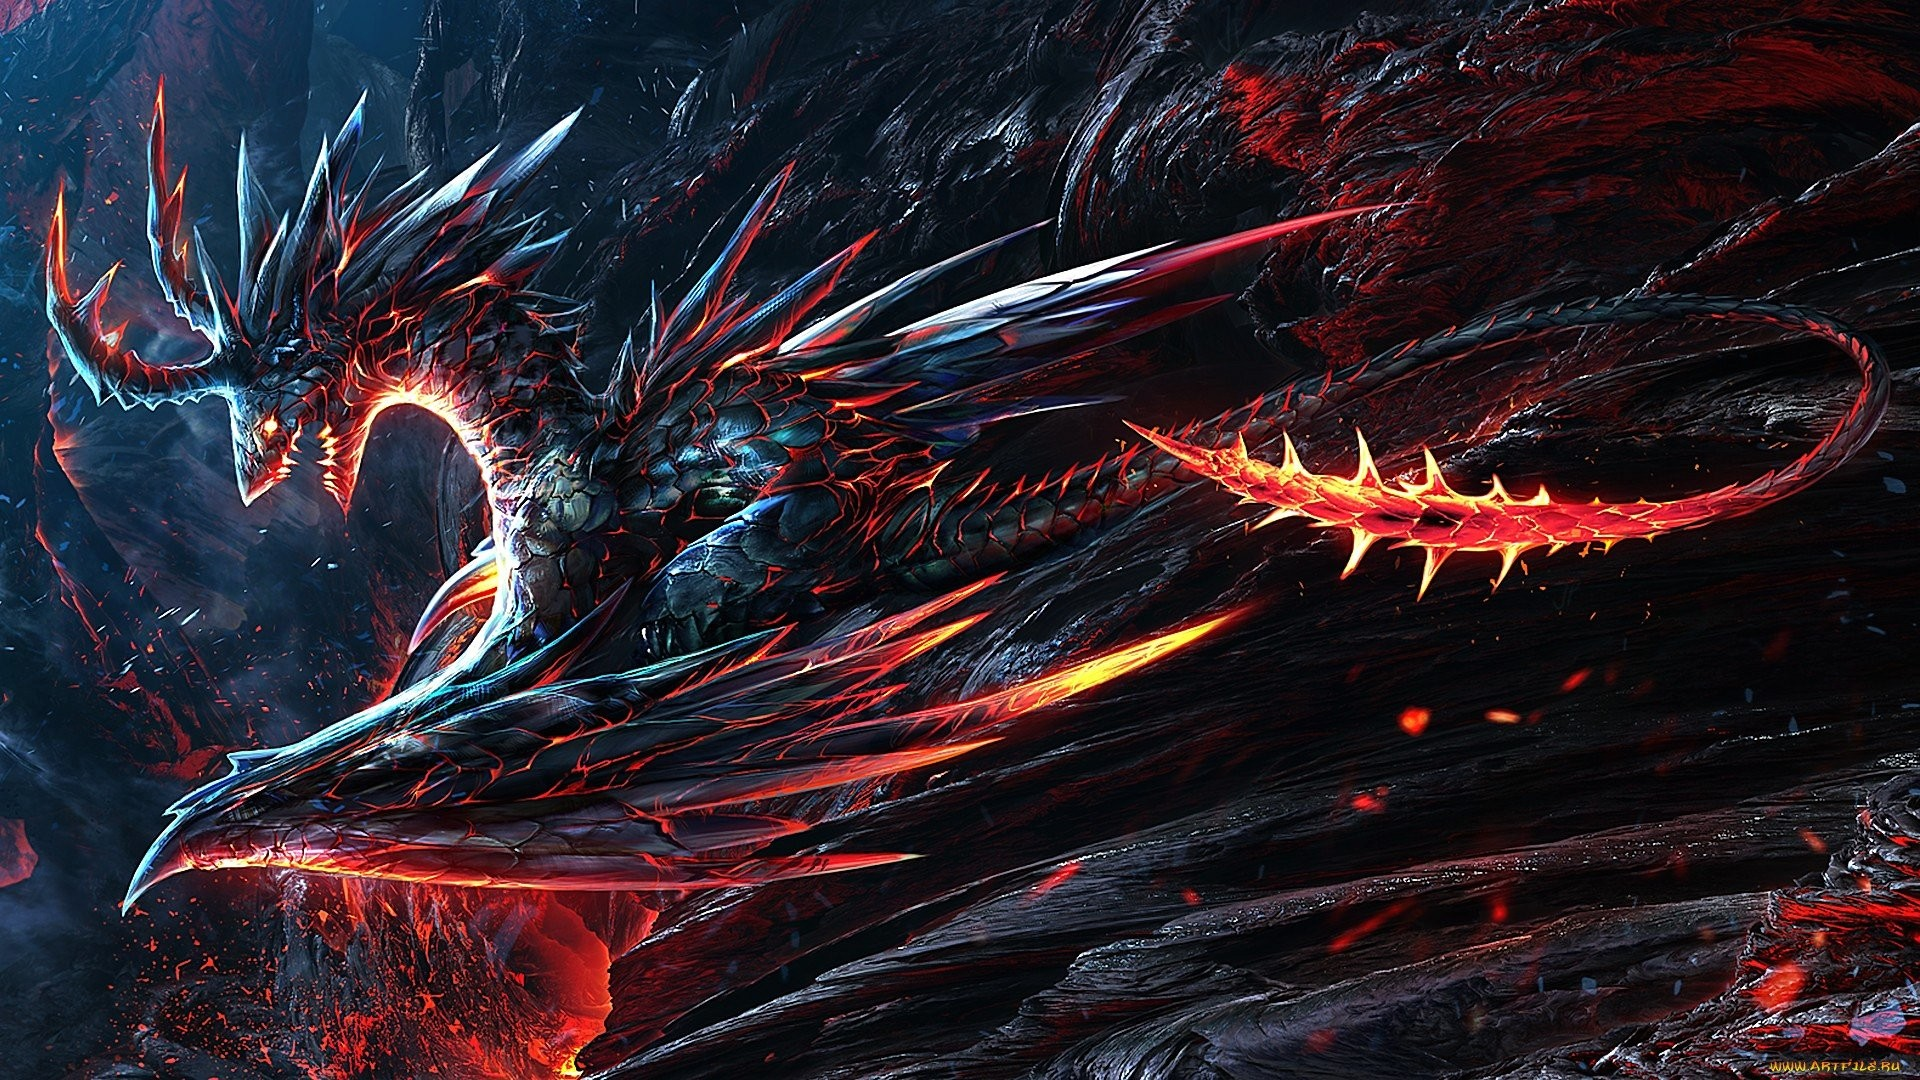 Lava Dragon Wallpapers | Lava Dragon Wallpapers | Pinterest | Lava and  Dragons